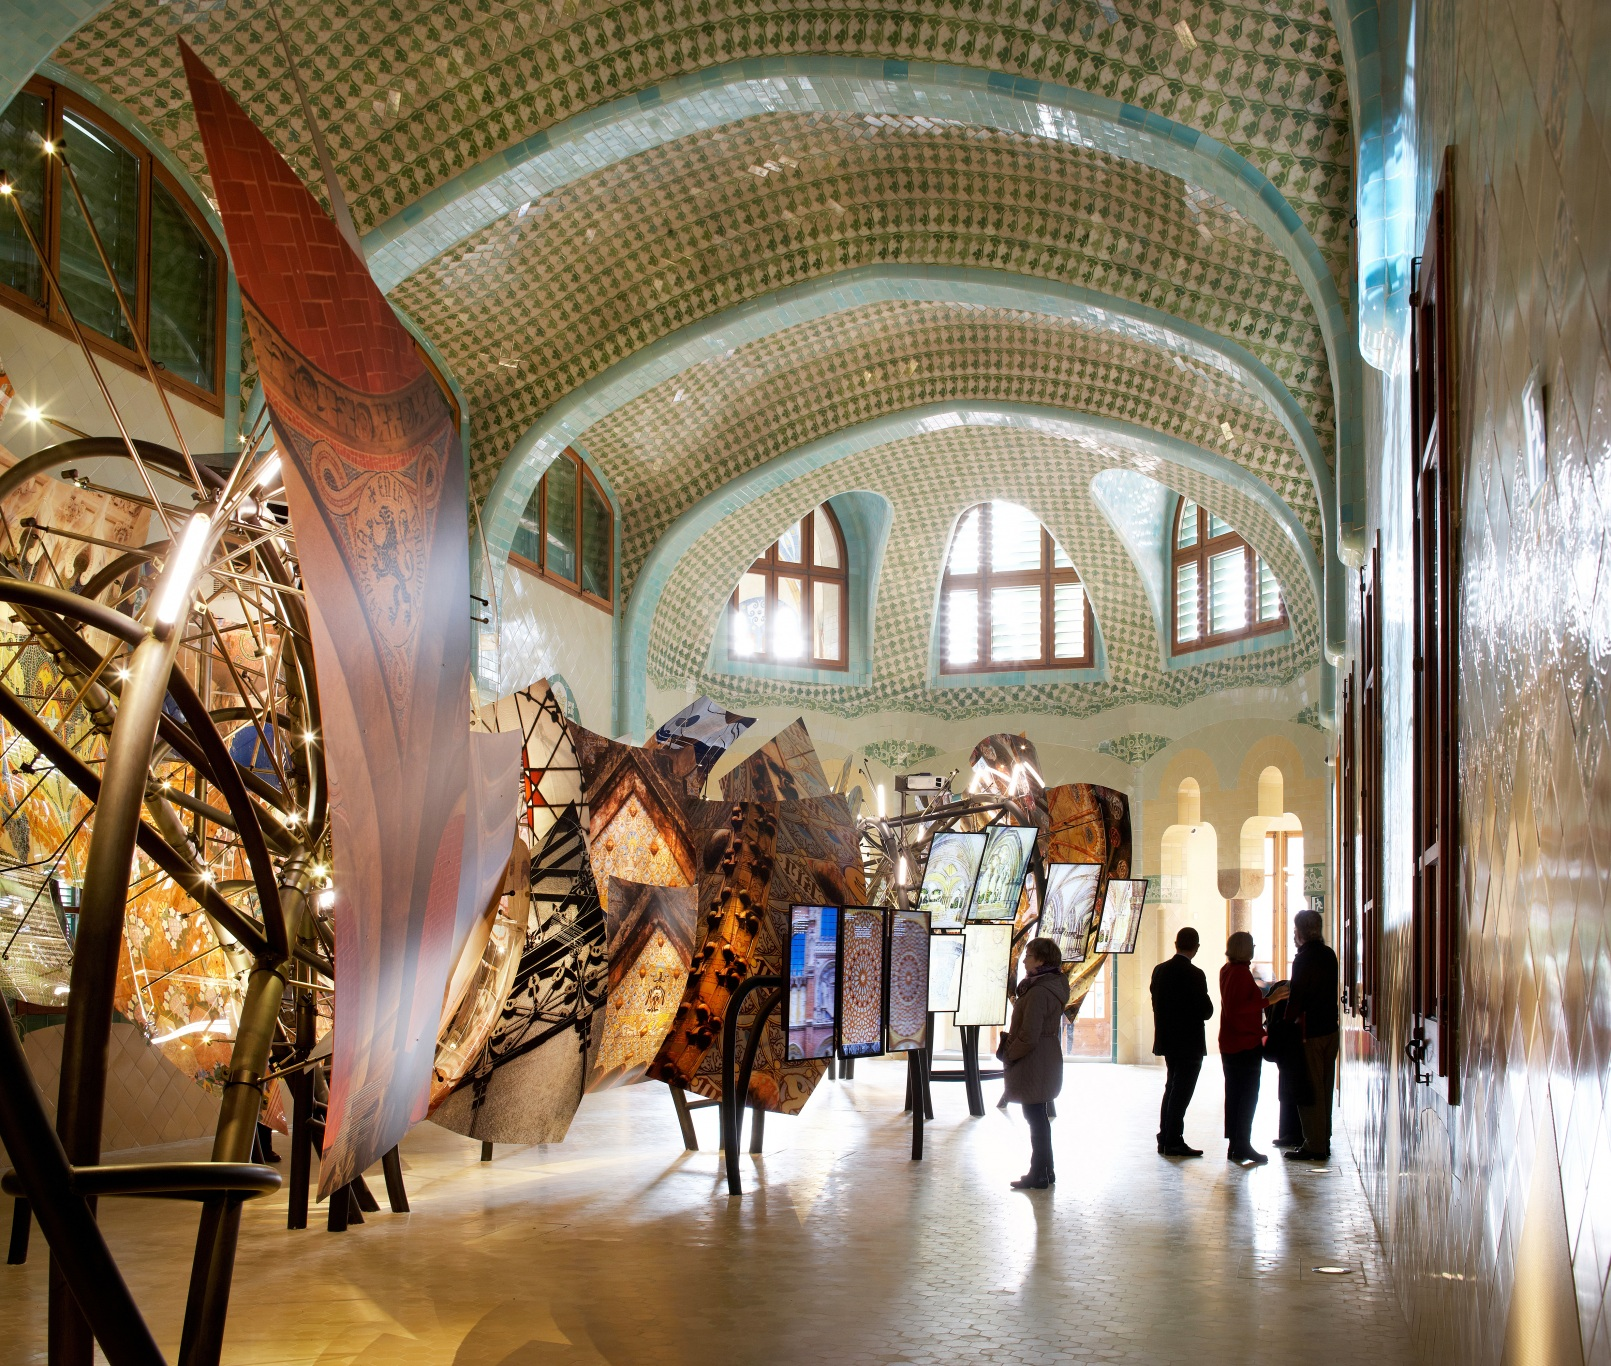 Hospital of the Santa Creu i Sant Pau. Illuminated dragon made of architectonic elements by Domènech i Montaner. Interactive screens and visitors.